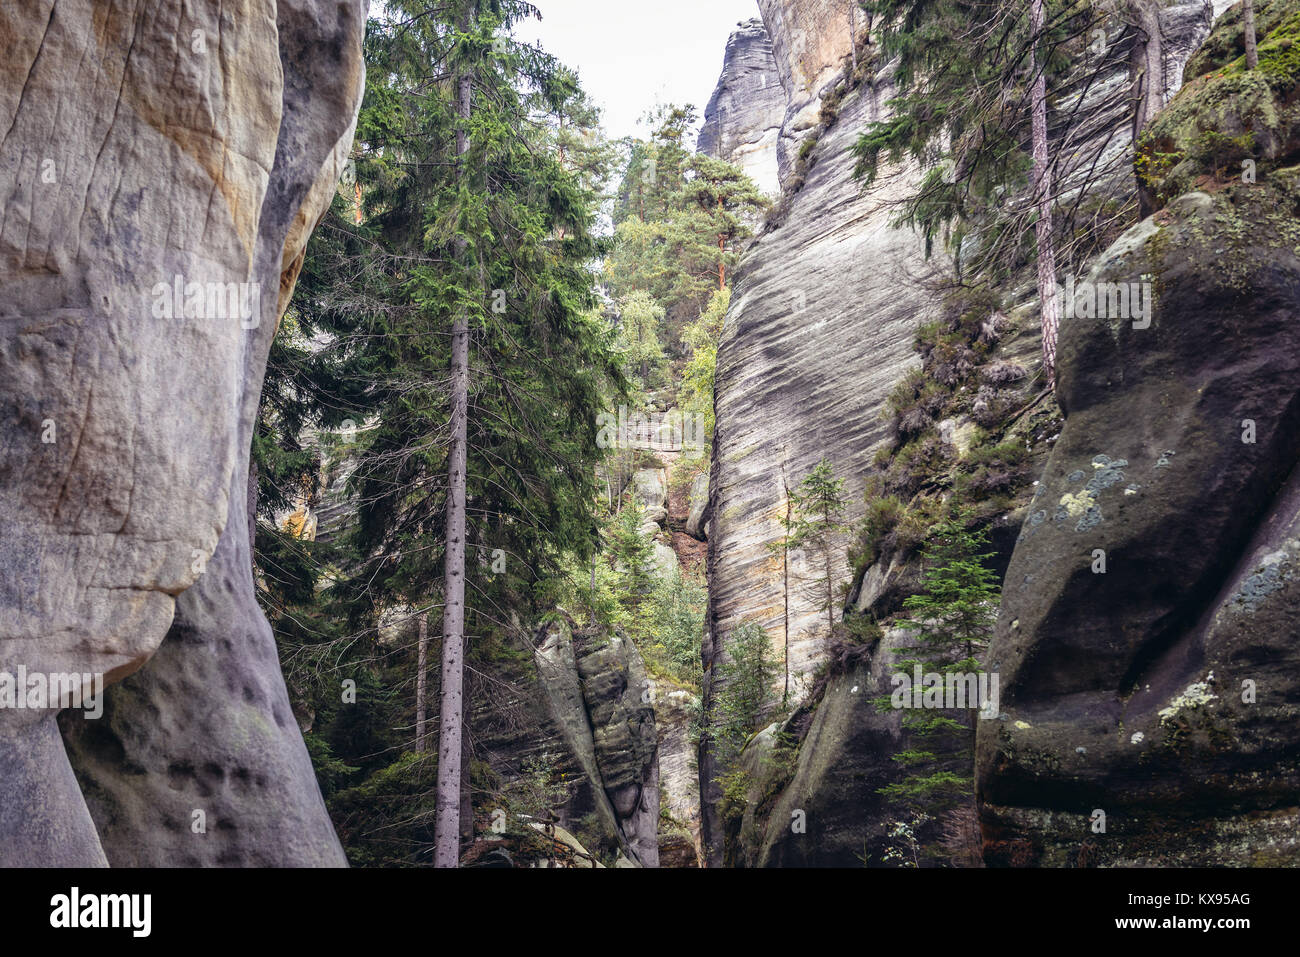 National Nature Reserve Adrspach-Teplice Rocks near Adrspach village in northeastern Bohemia region, Czech Republic - Stock Image